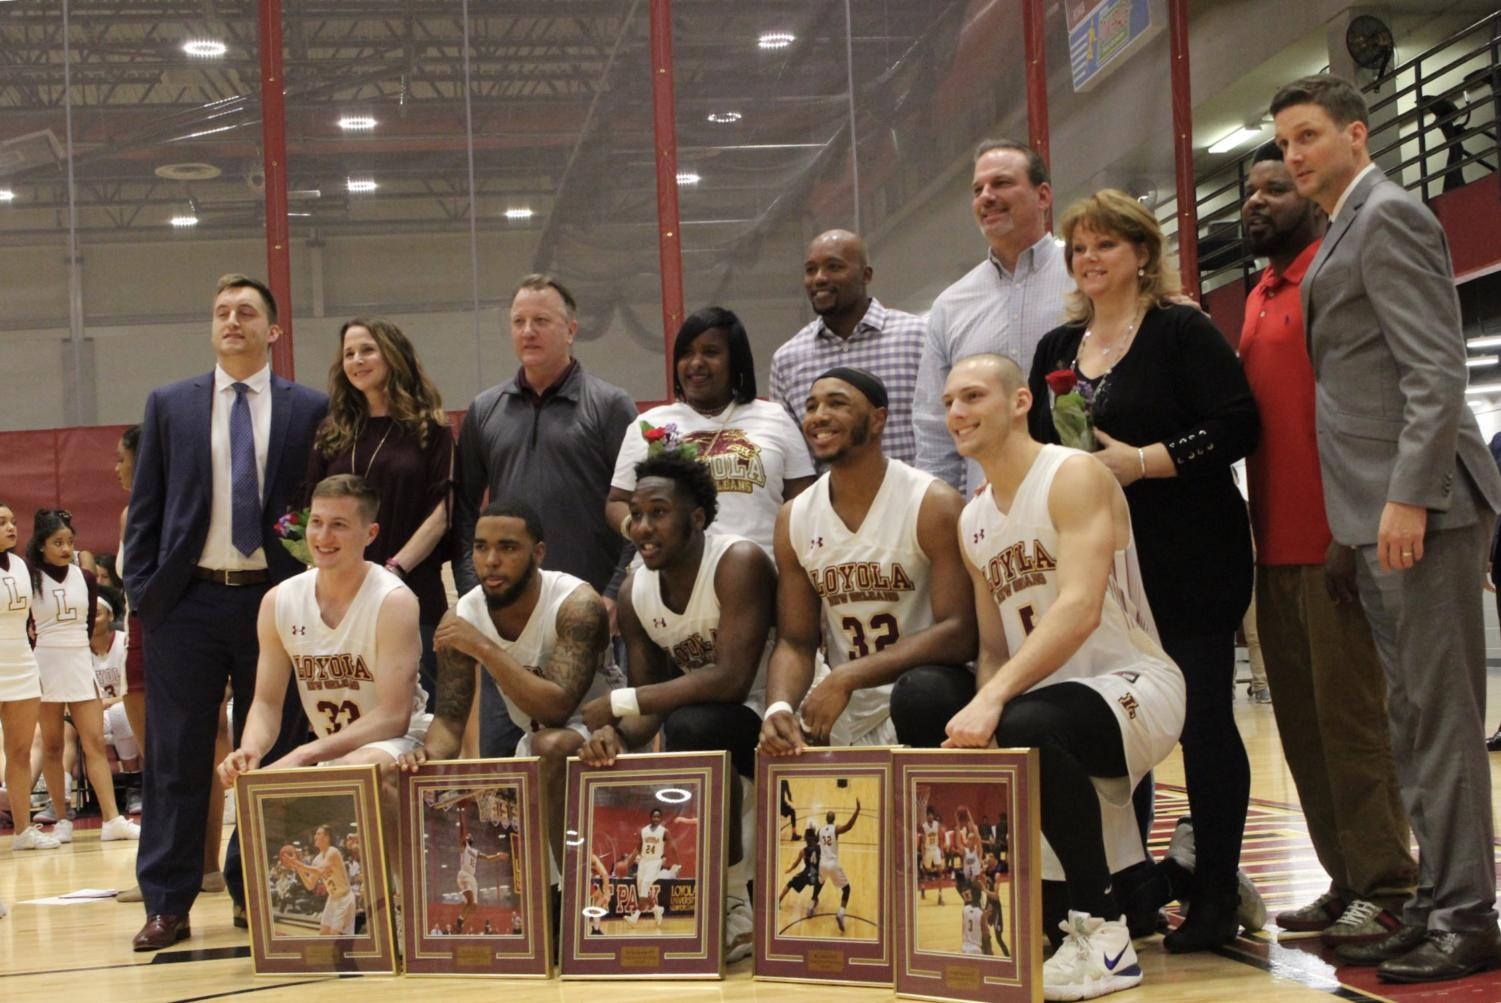 All+five+men%27s+basketball+senior+pose+for+a+photo+with+their+families+at+Senior+Night.+Photo+credit%3A+Rosha%27E+Gibson